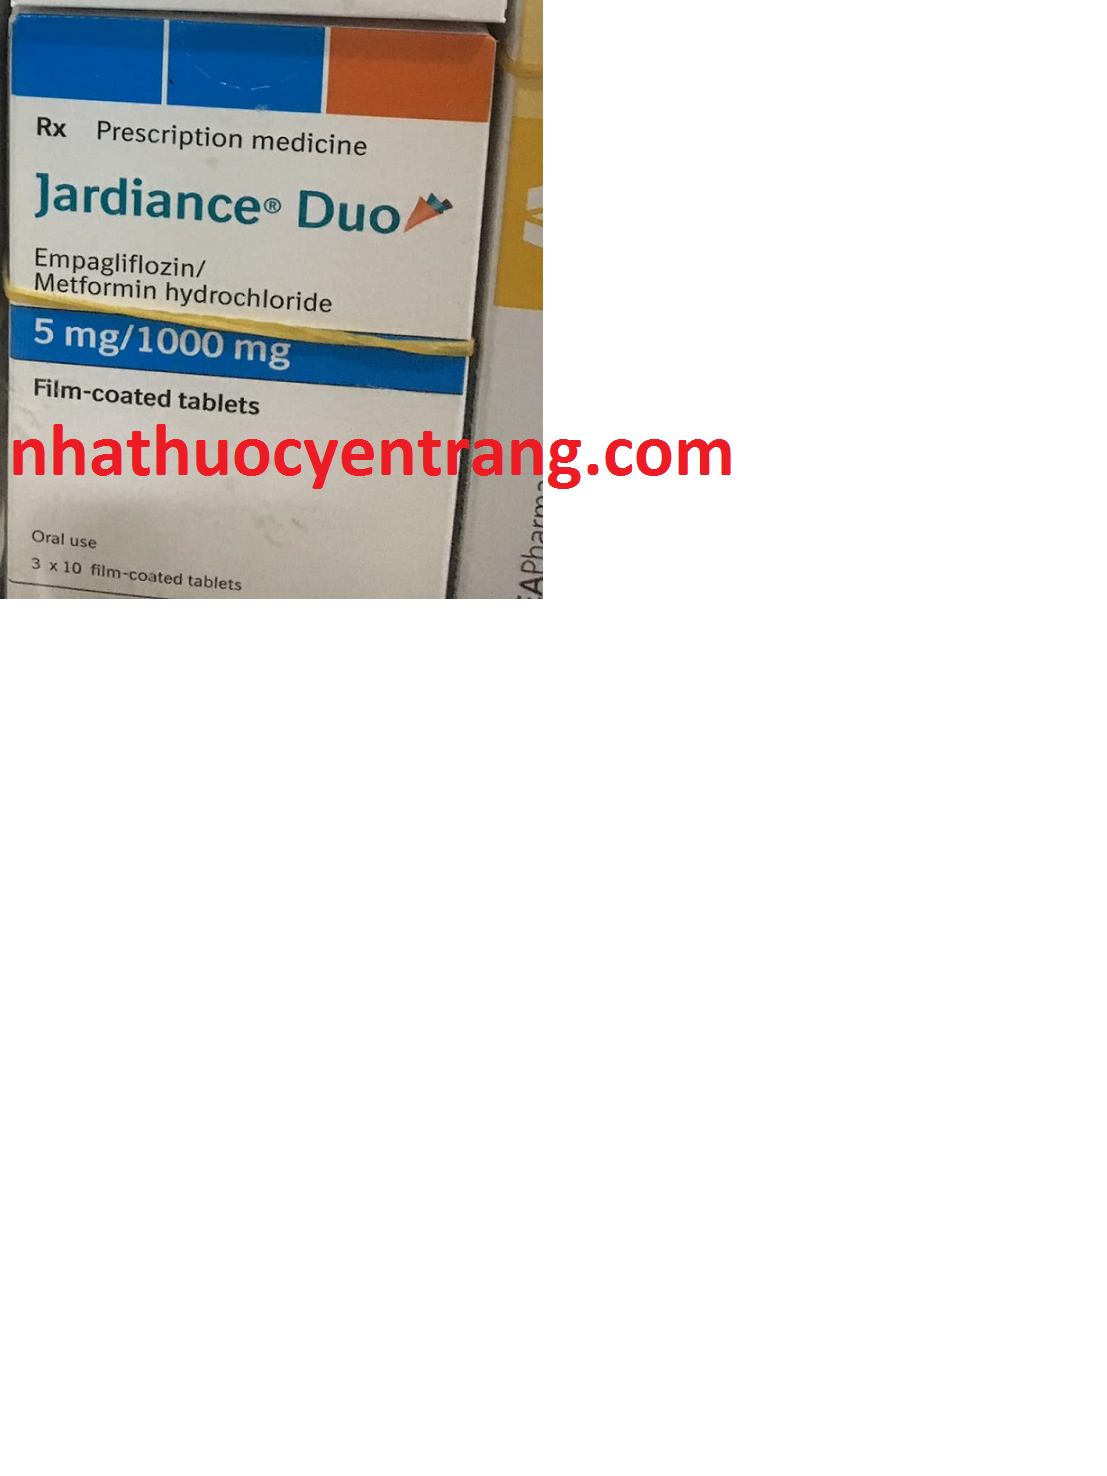 Jardiance Duo 5/1000mg